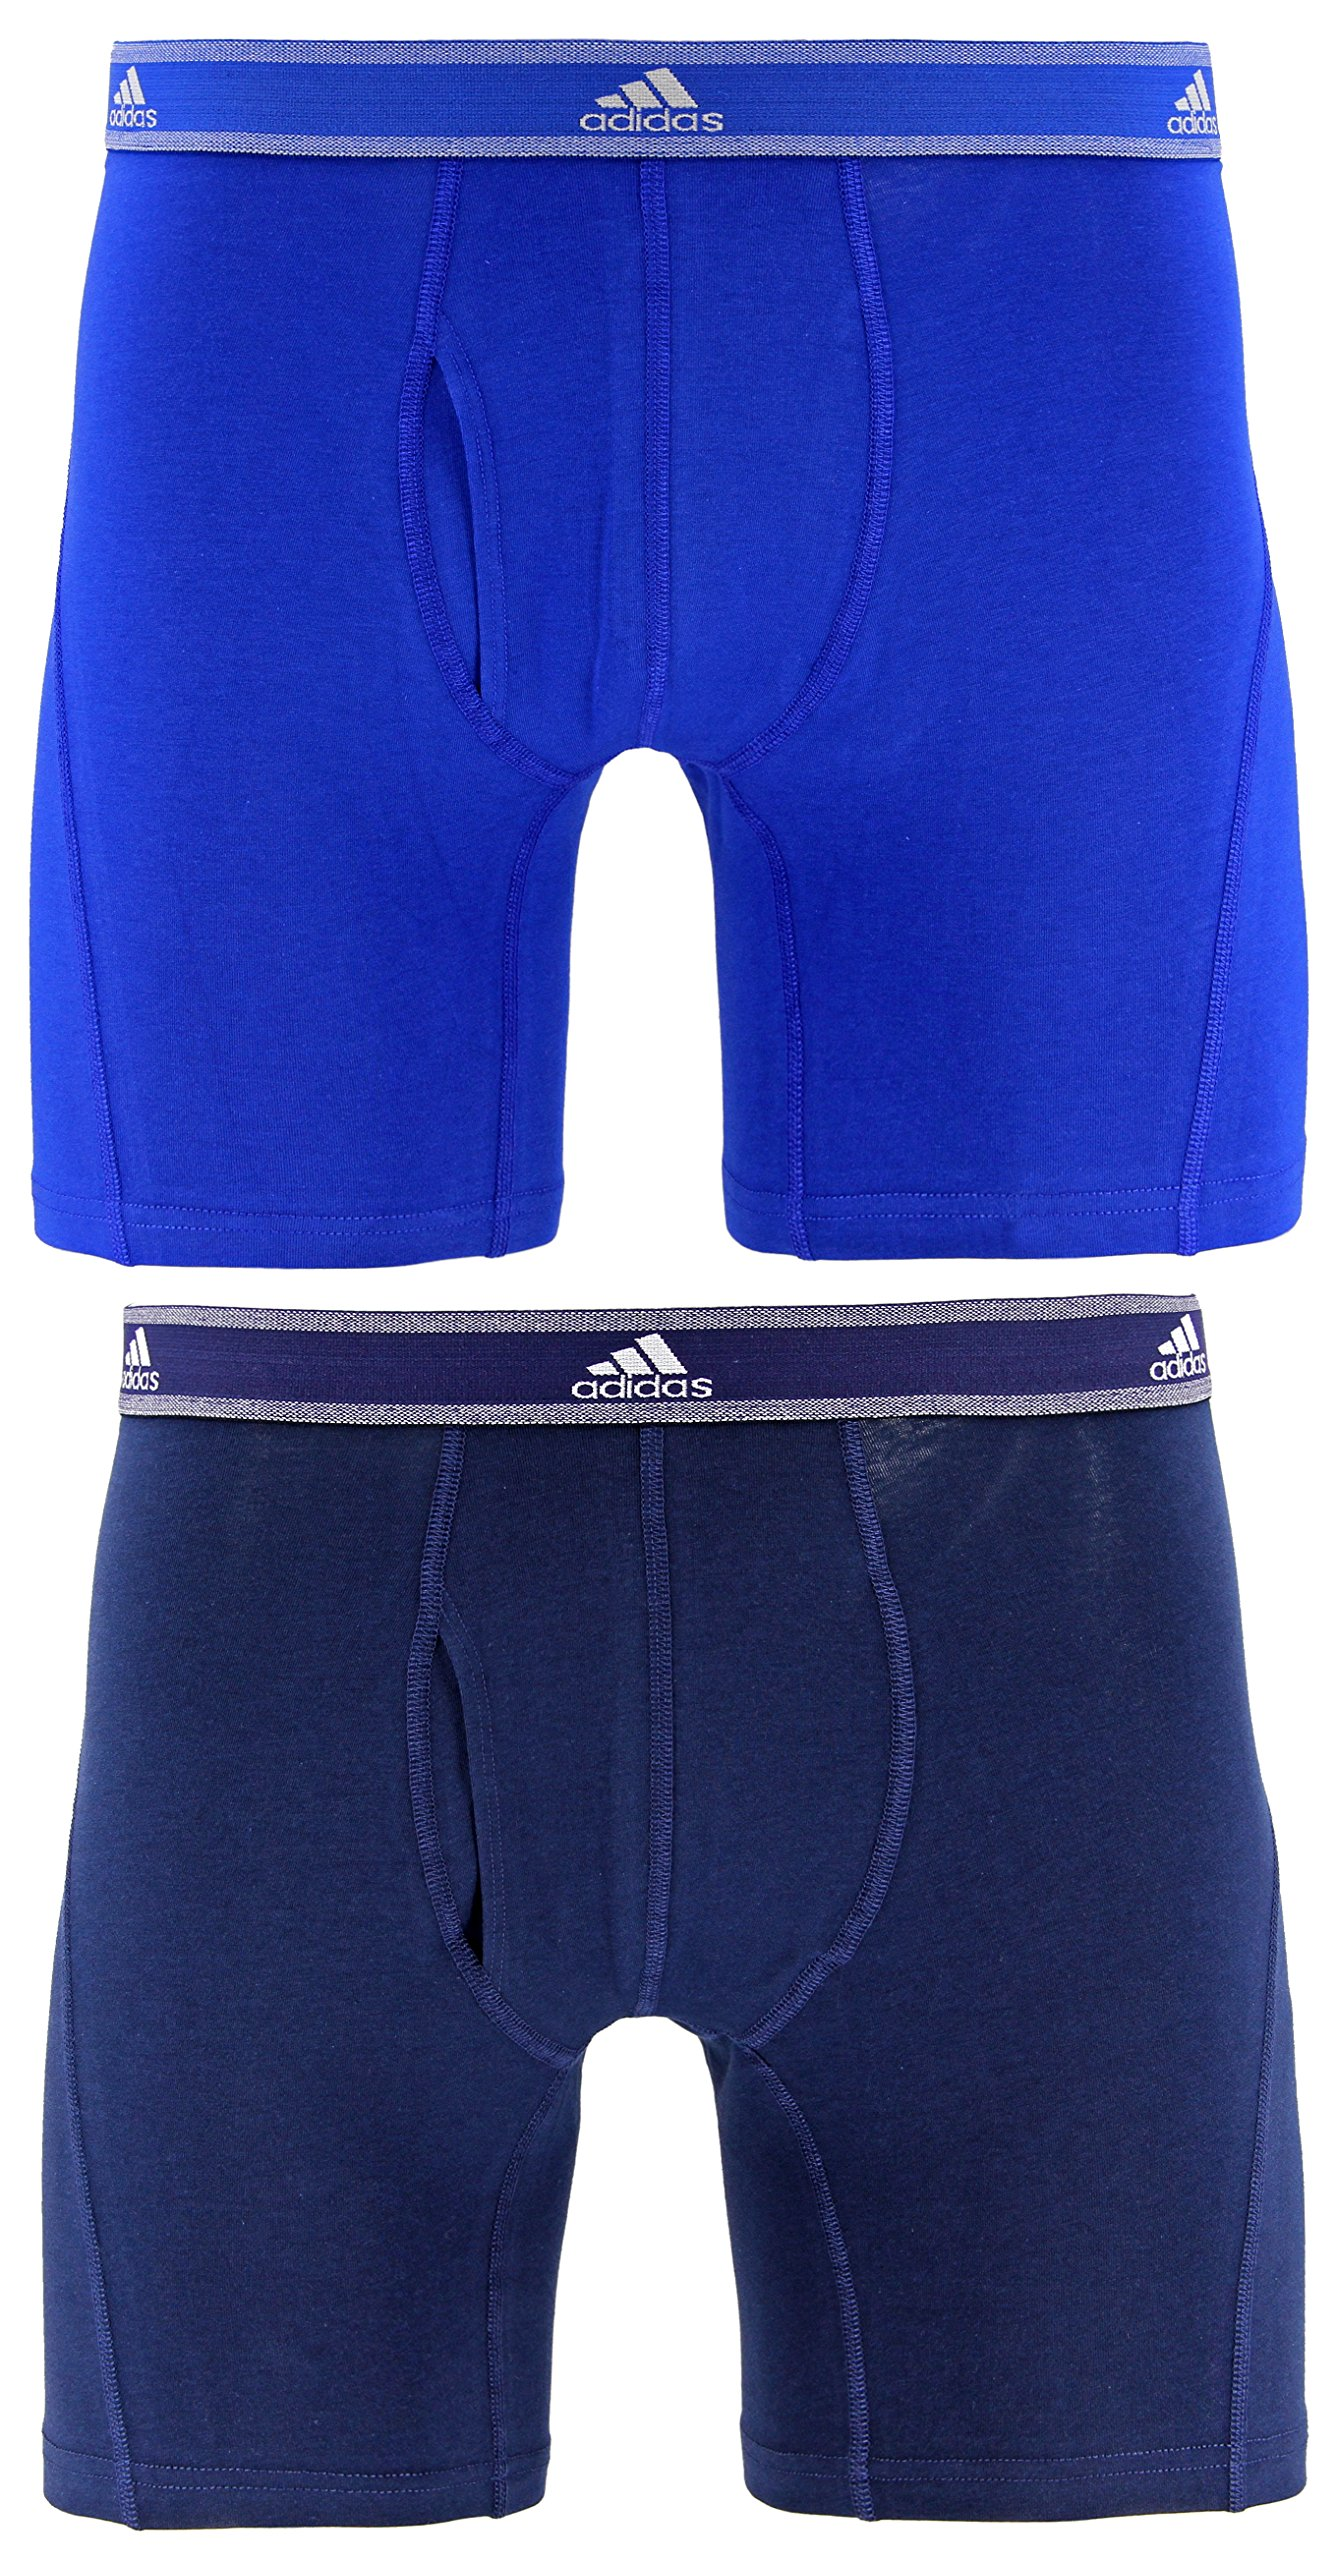 adidas Men's Relaxed Performance Stretch Cotton Boxer Briefs Underwear (2-Pack) by adidas (Image #1)